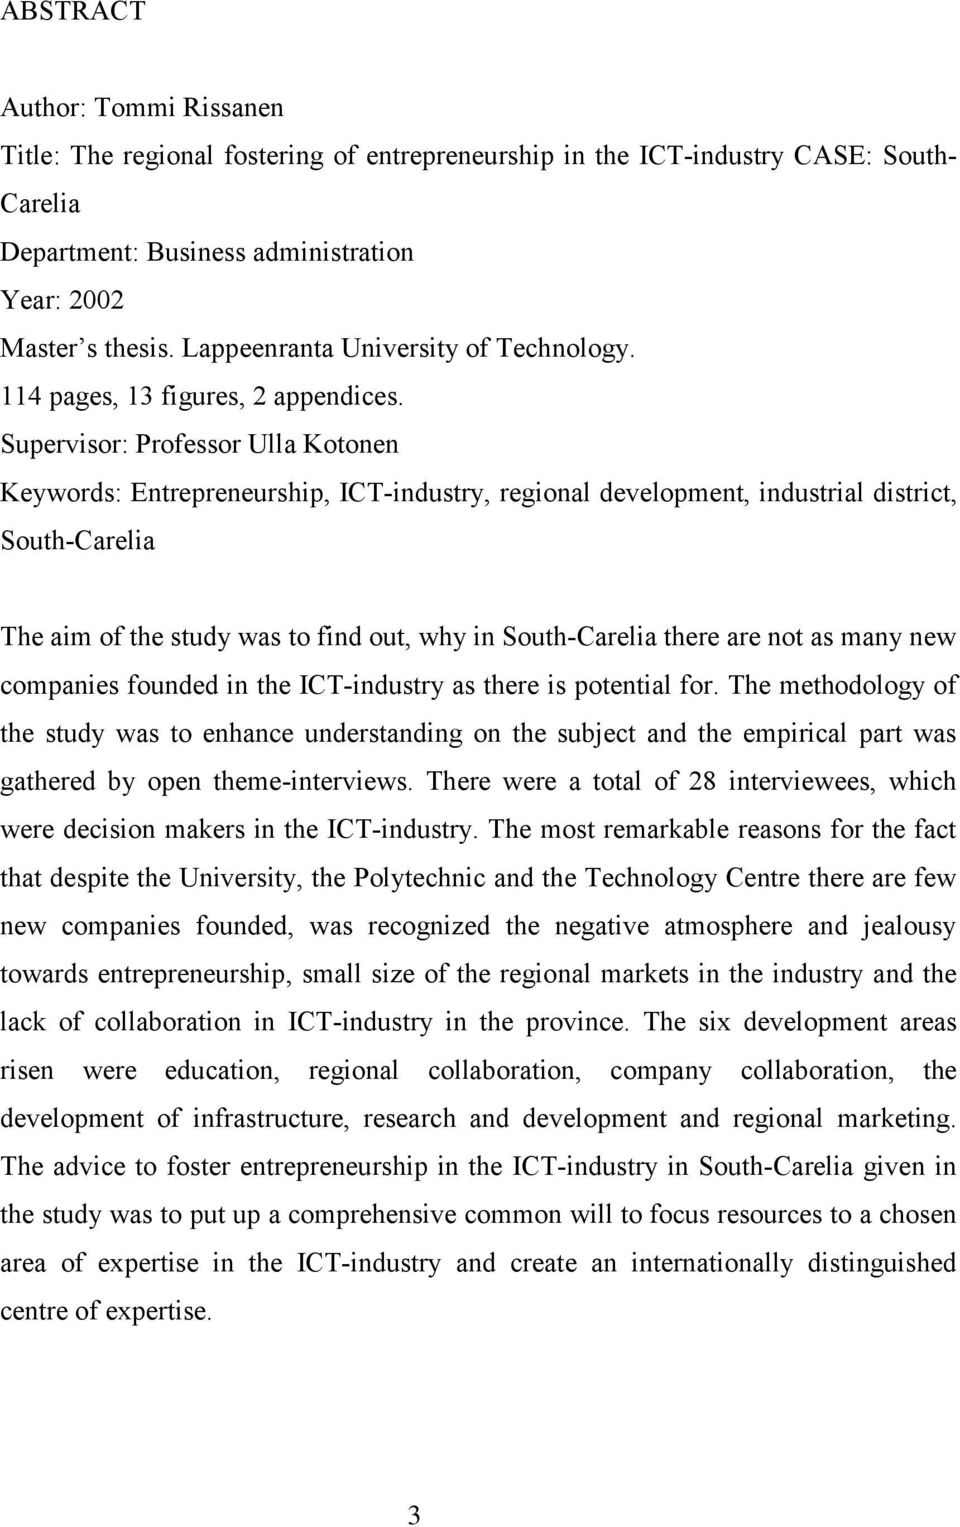 Supervisor: Professor Ulla Kotonen Keywords: Entrepreneurship, ICT-industry, regional development, industrial district, South-Carelia The aim of the study was to find out, why in South-Carelia there